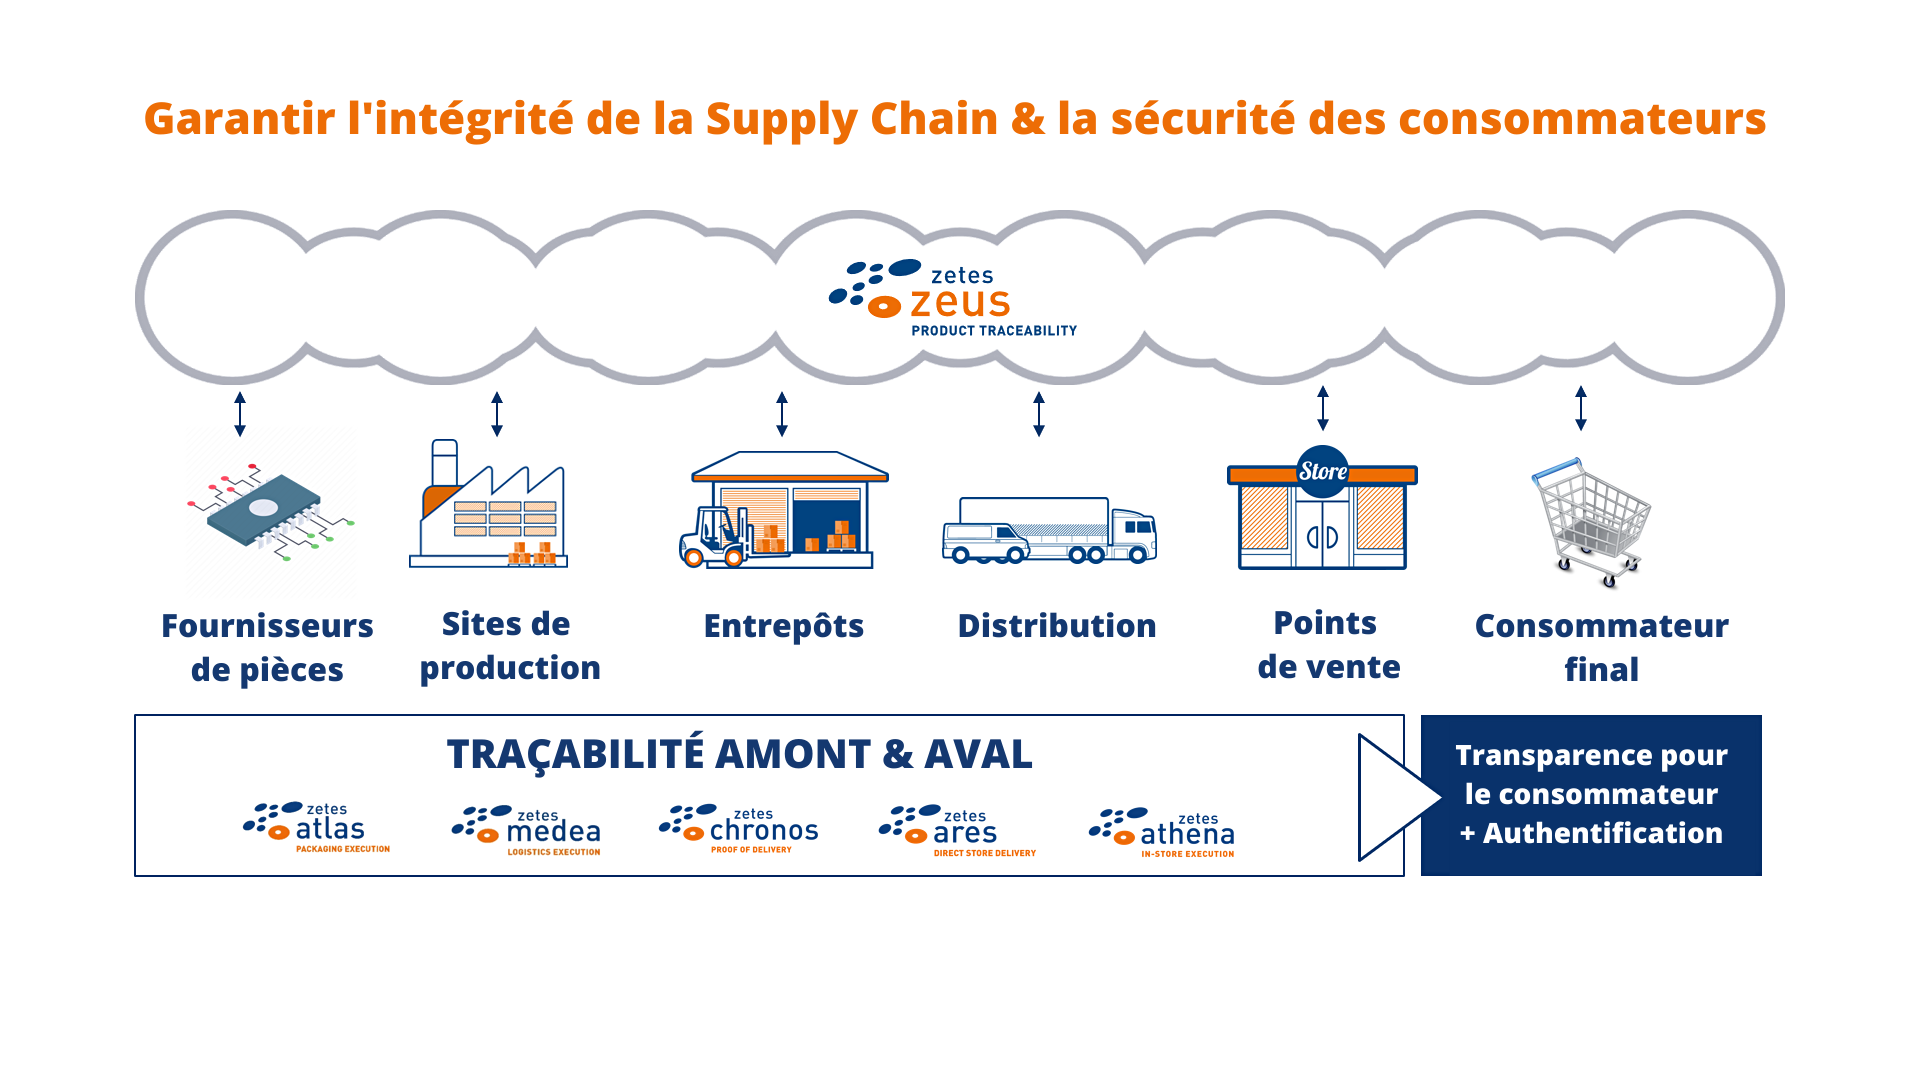 Securing Supply Chain Integrity & Consumer Safety